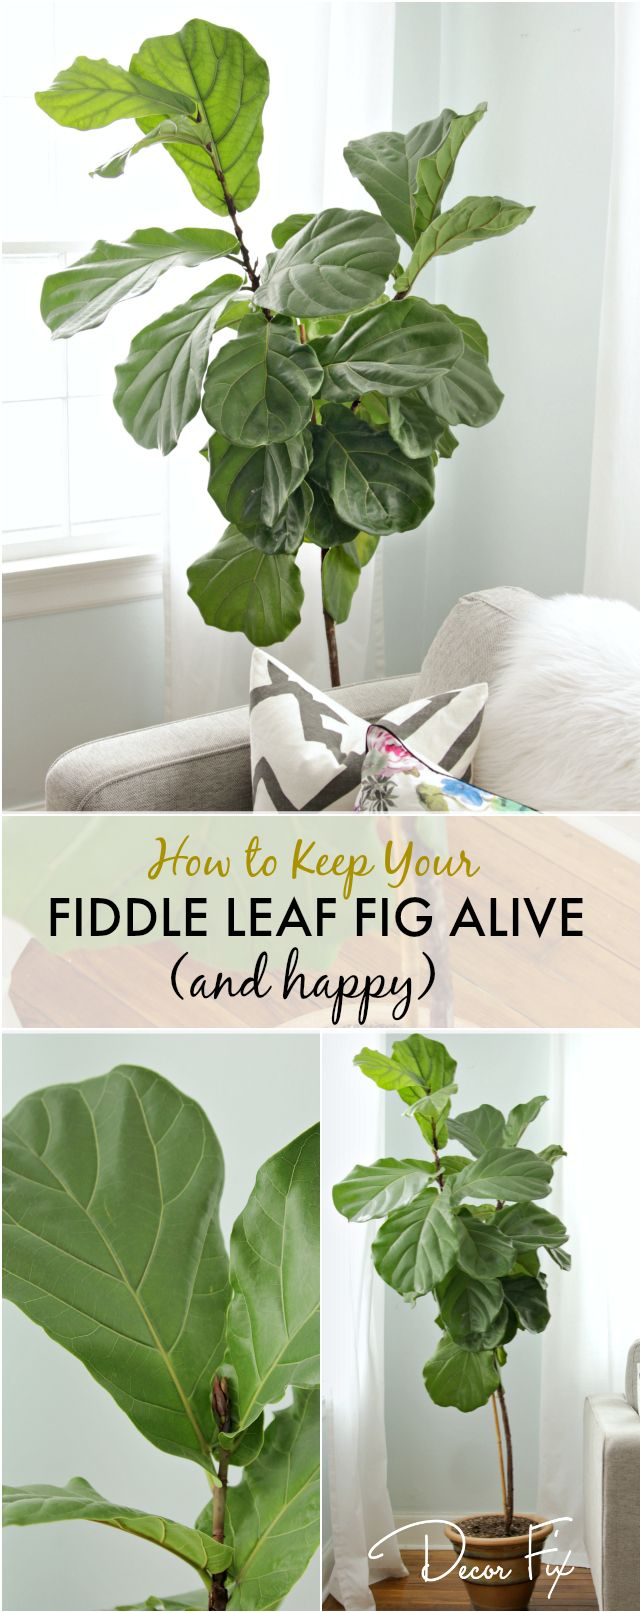 Keep your fiddle leaf fig alive & happy